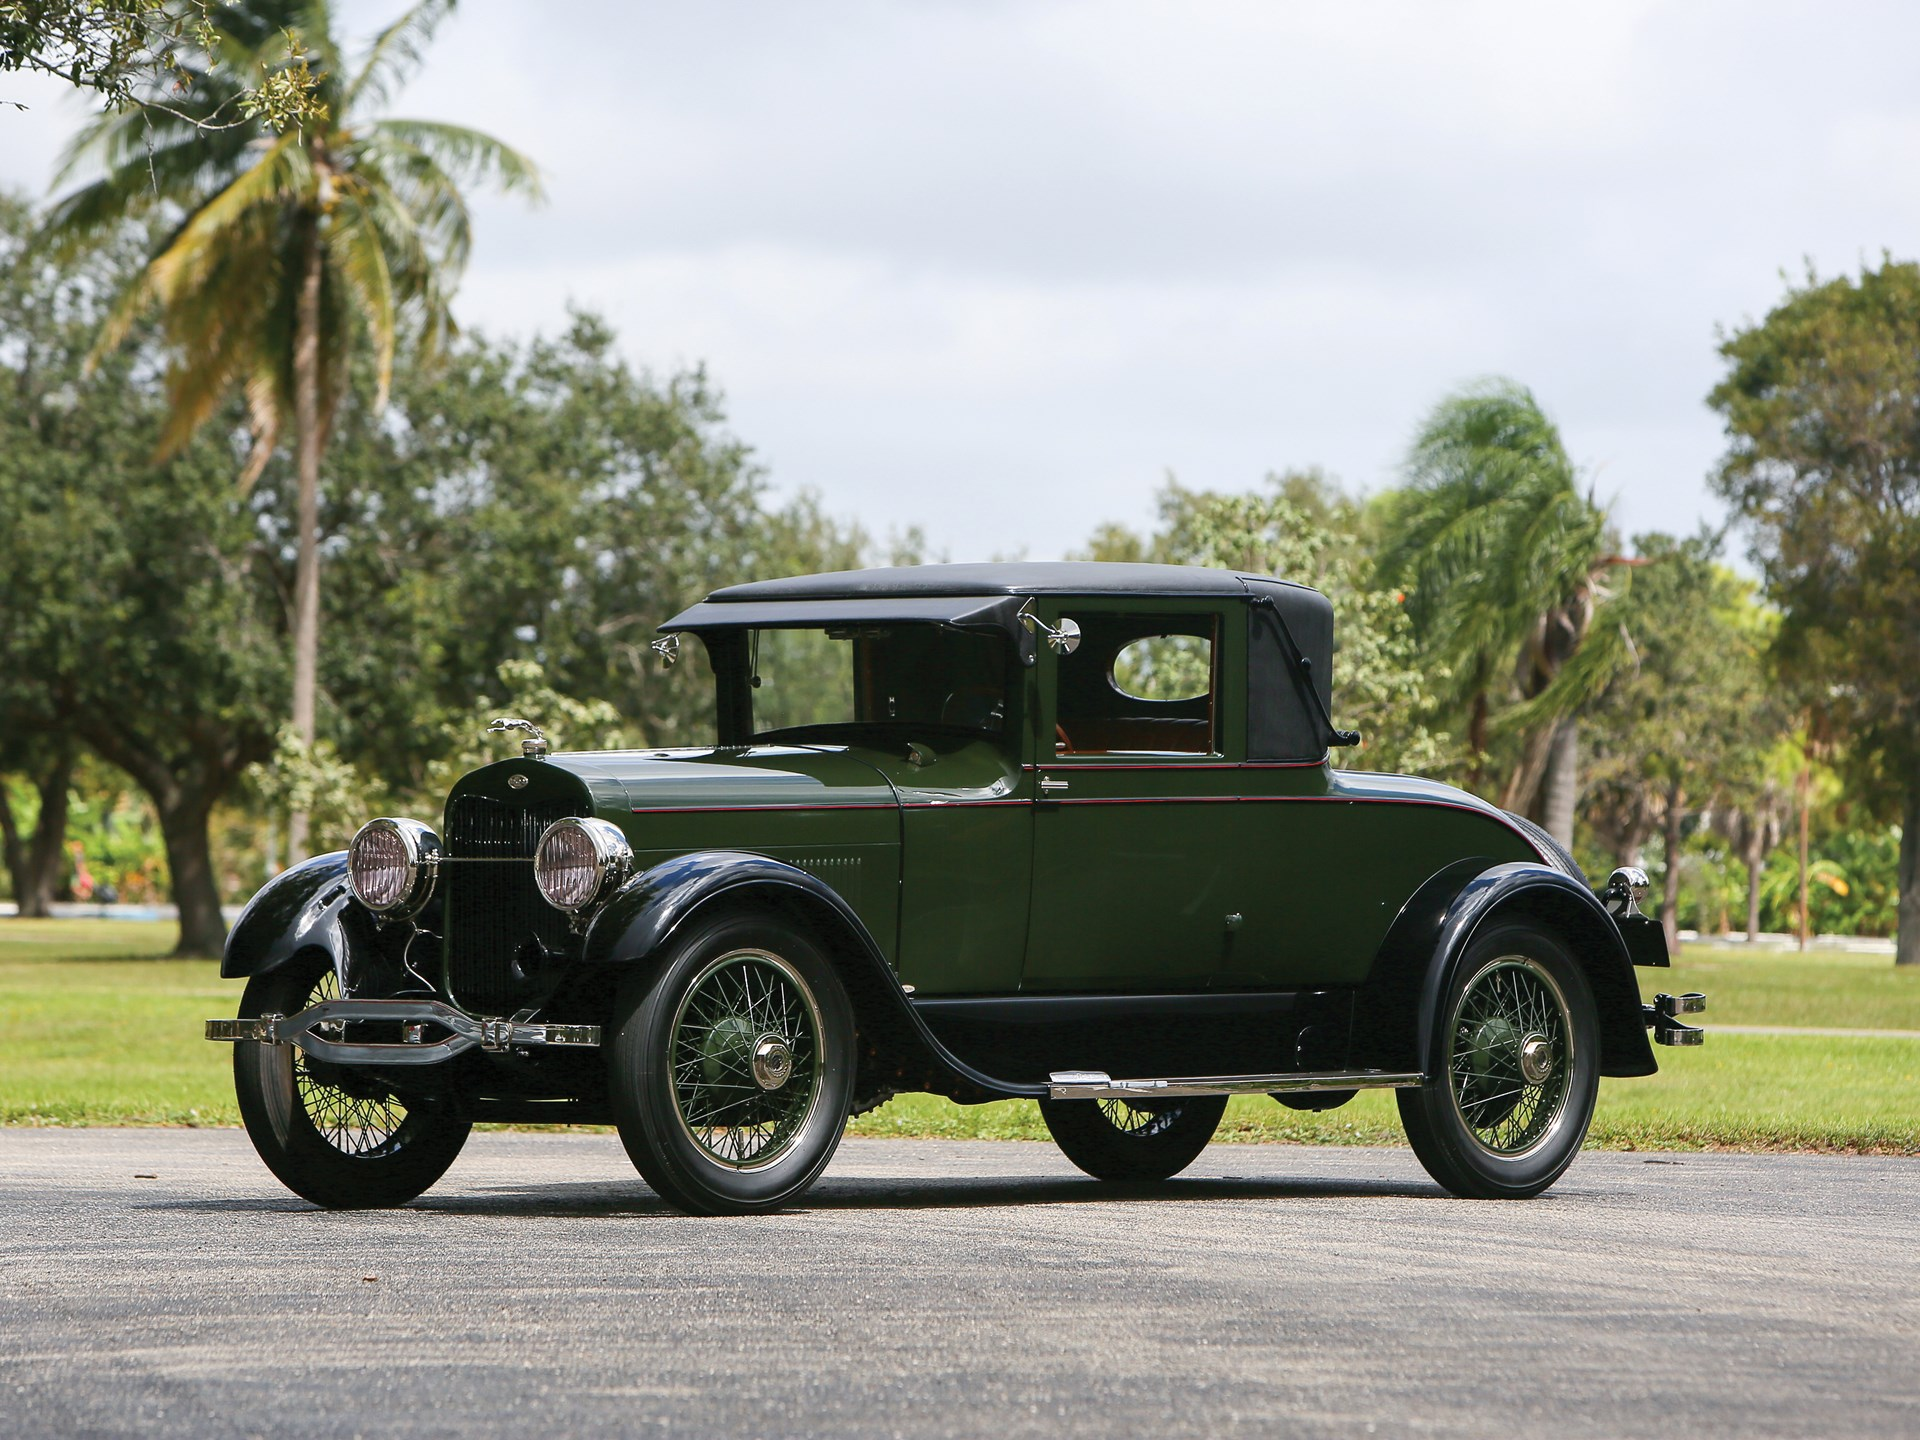 1925 Lincoln Model L Coupe by Judkins